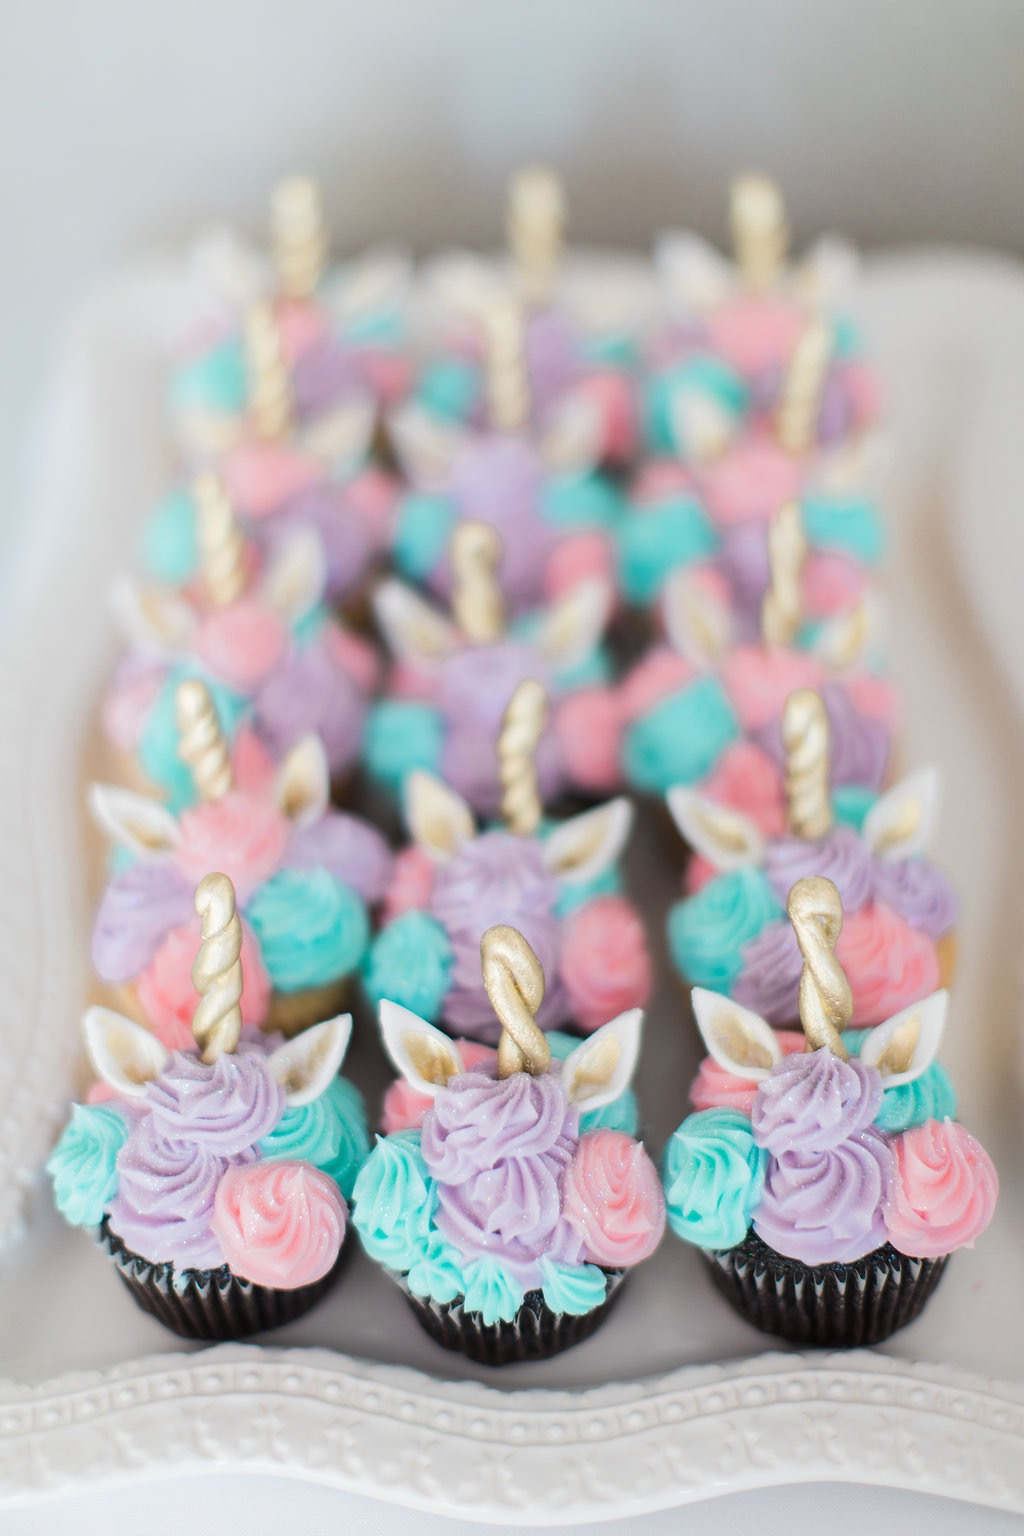 I Mean Just Look At These Unicorn Cupcakes Theyre So Whimsical And Beautiful Definitely Pinterest Worthy Will Certainly Be Using Polkatots